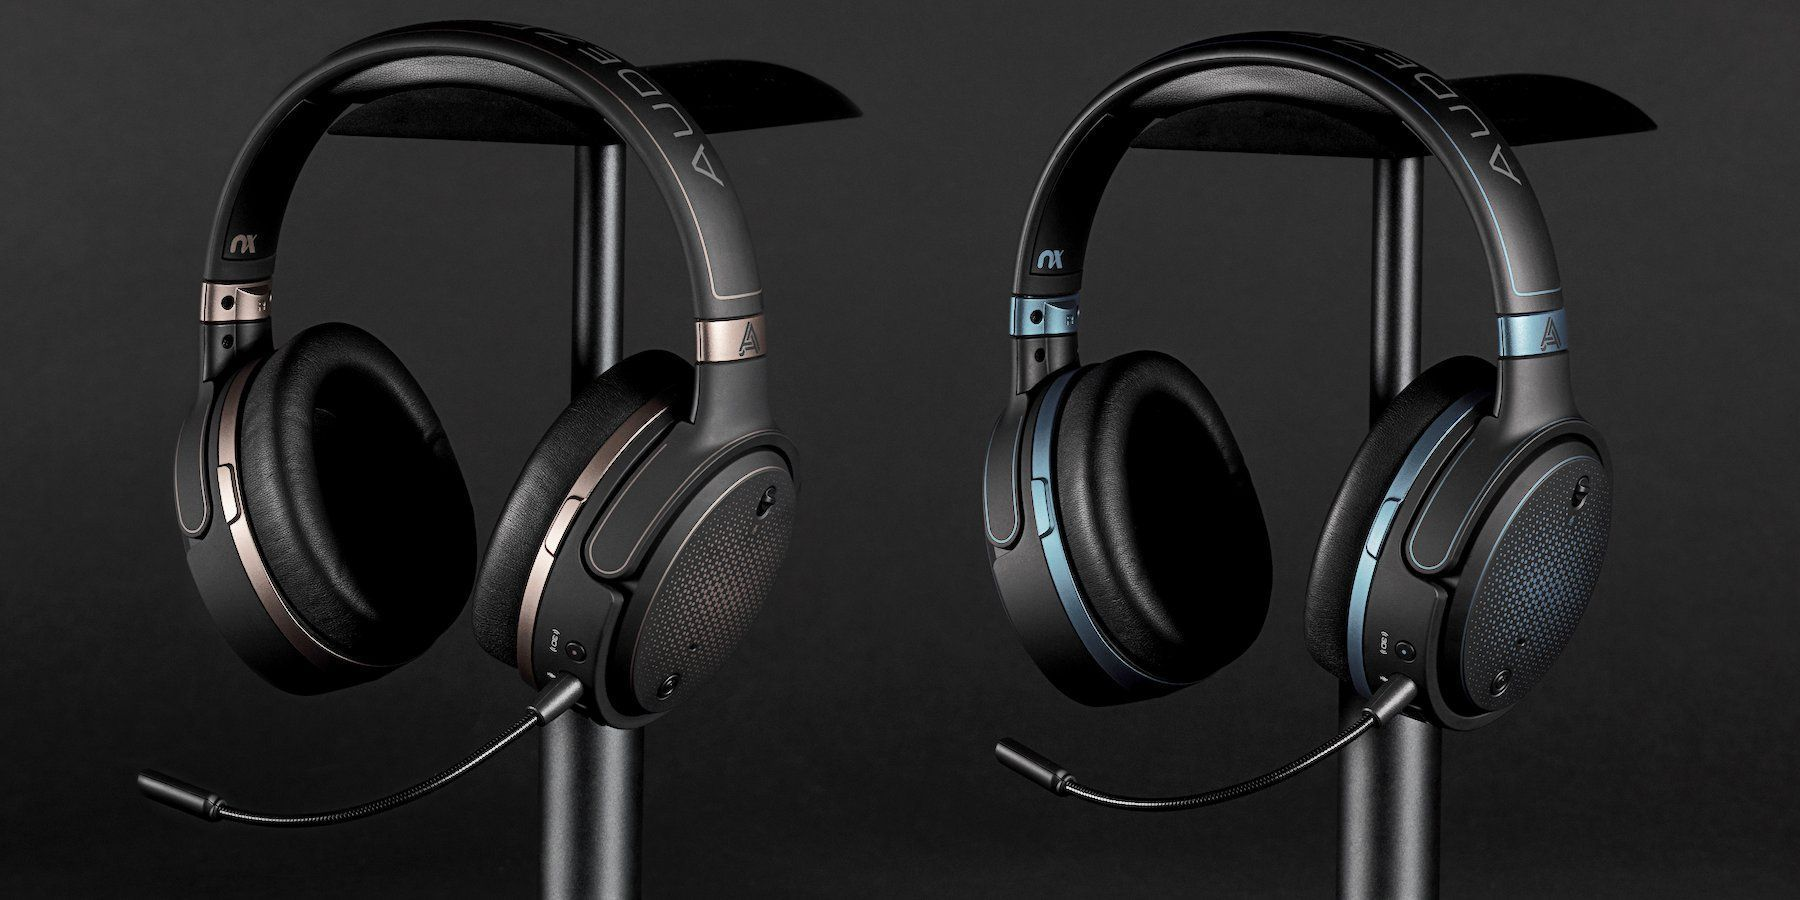 These Surround Sound Gaming Headphones Made By A High End Audio P47 Headphone Wireless Beats Company Are Perfect